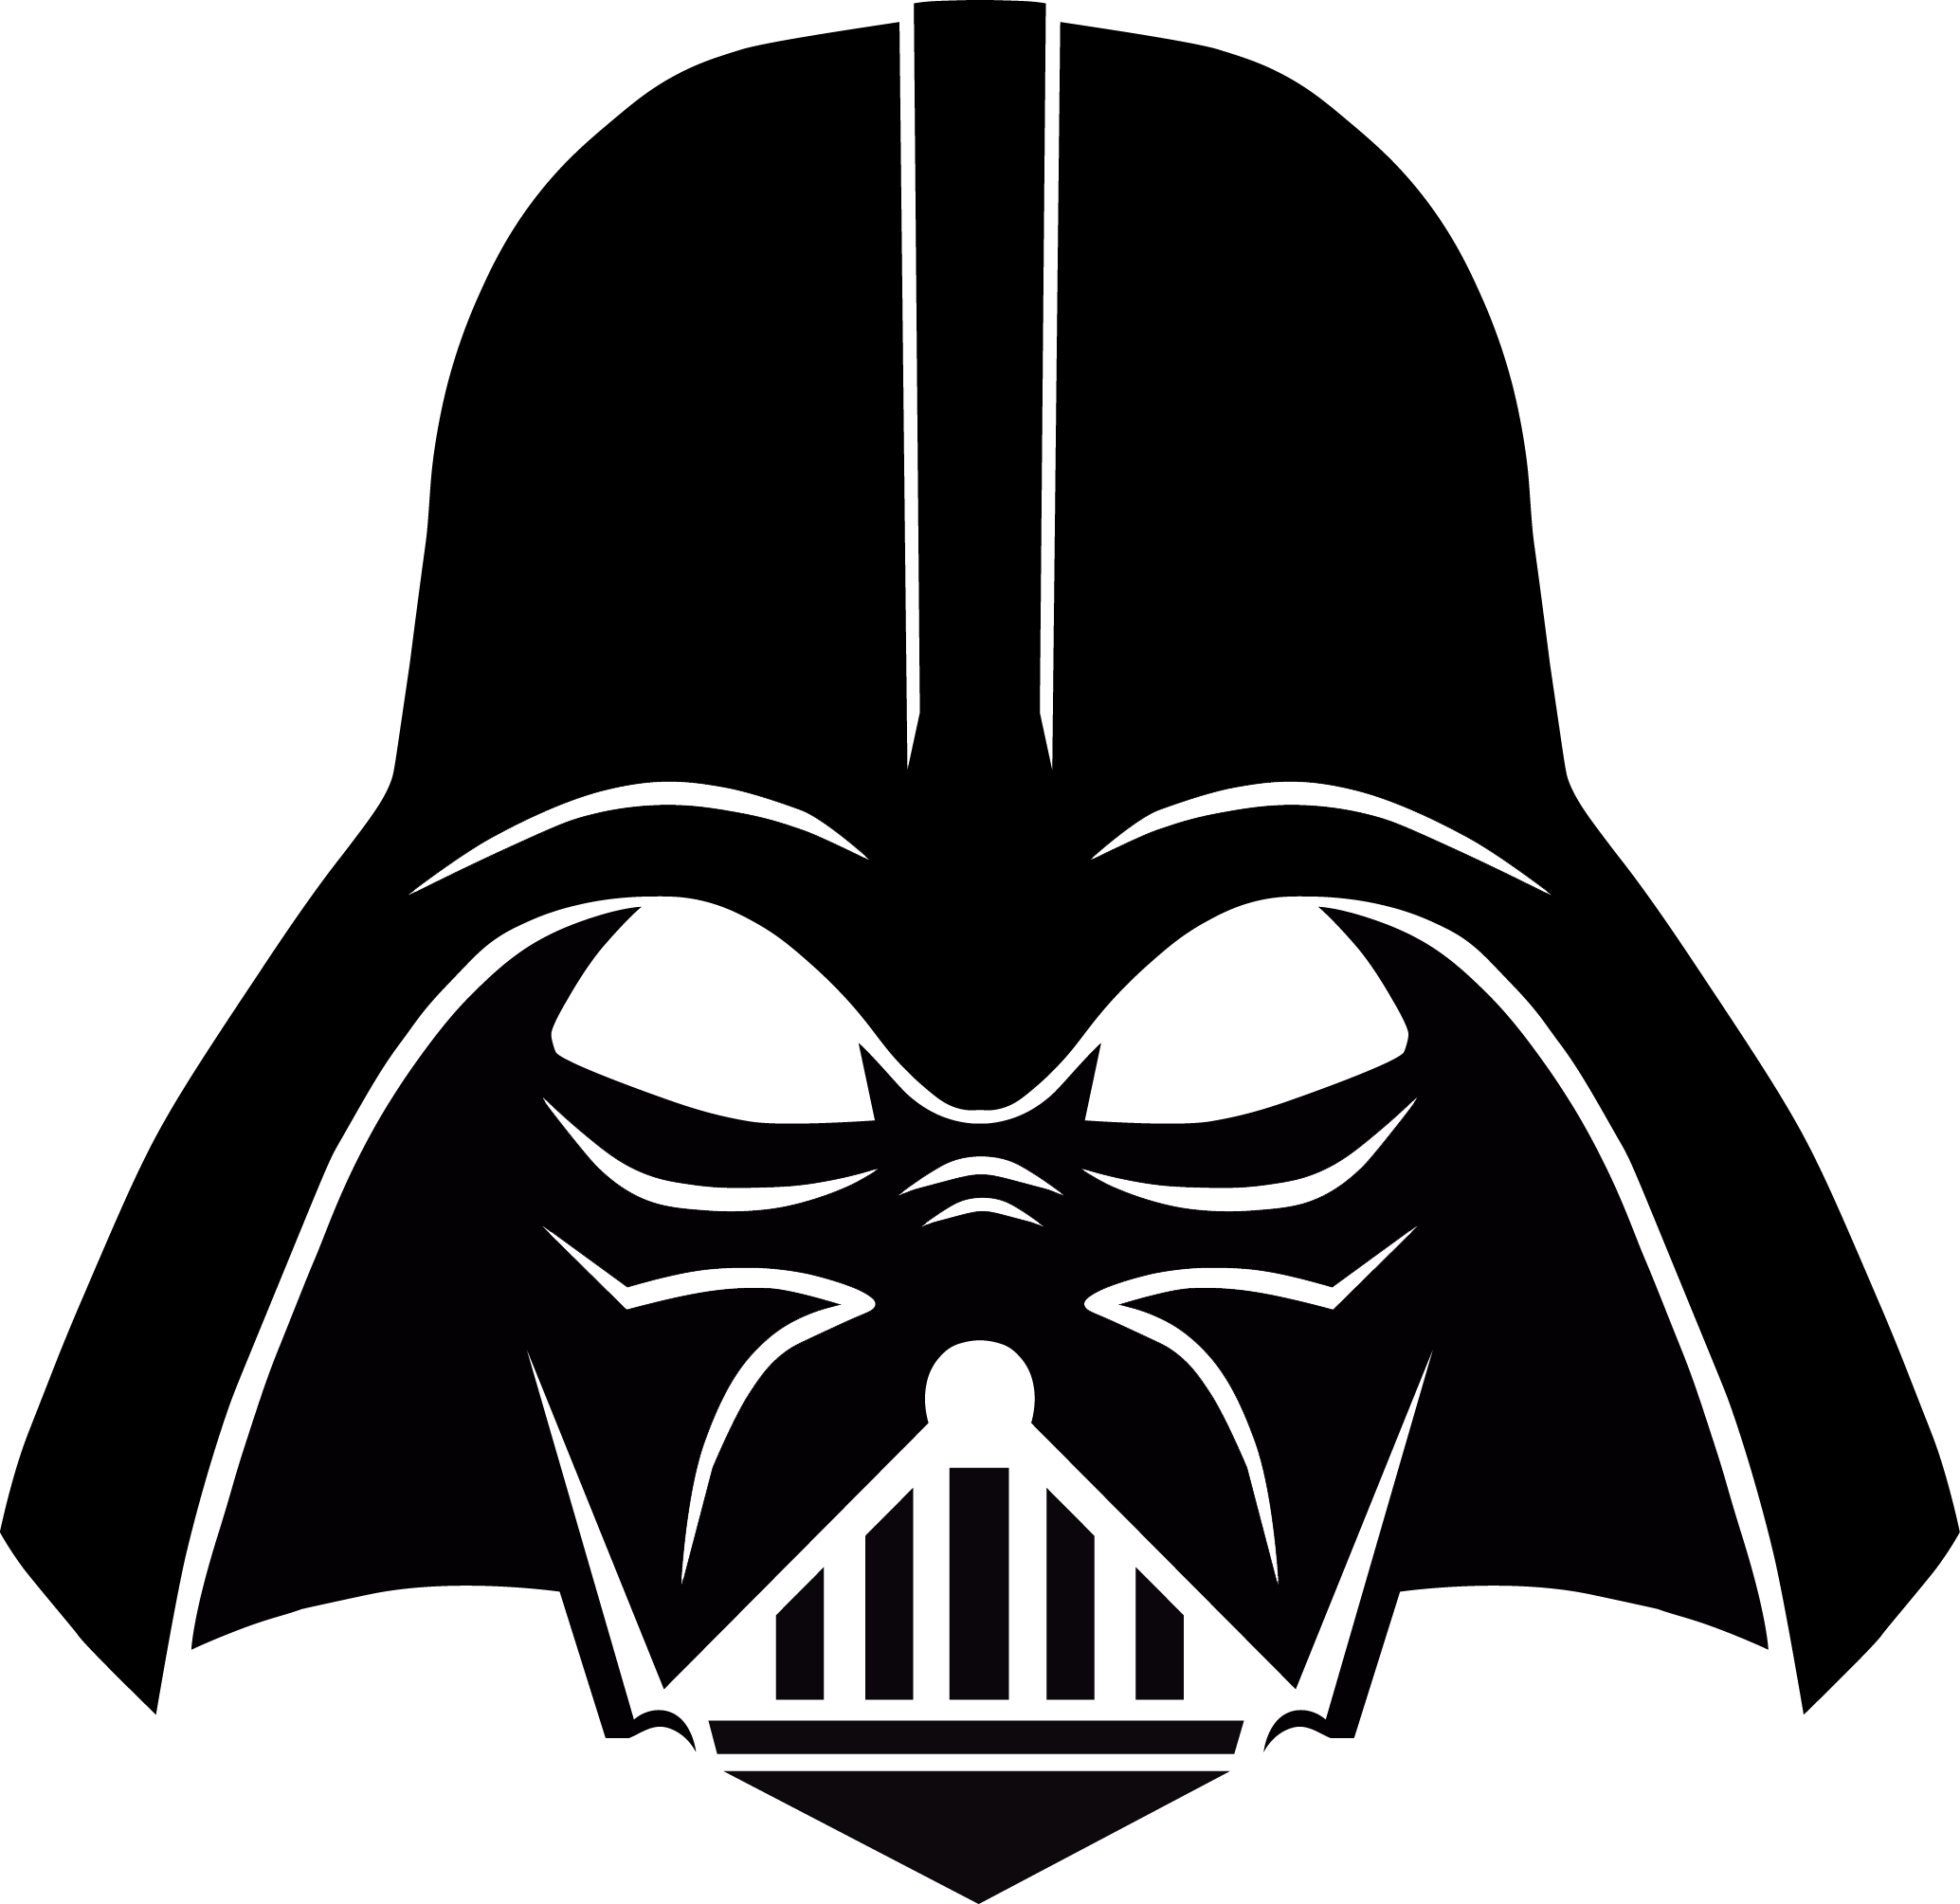 graphic free stock Chewbacca clipart darth vader FREE for download on rpelm